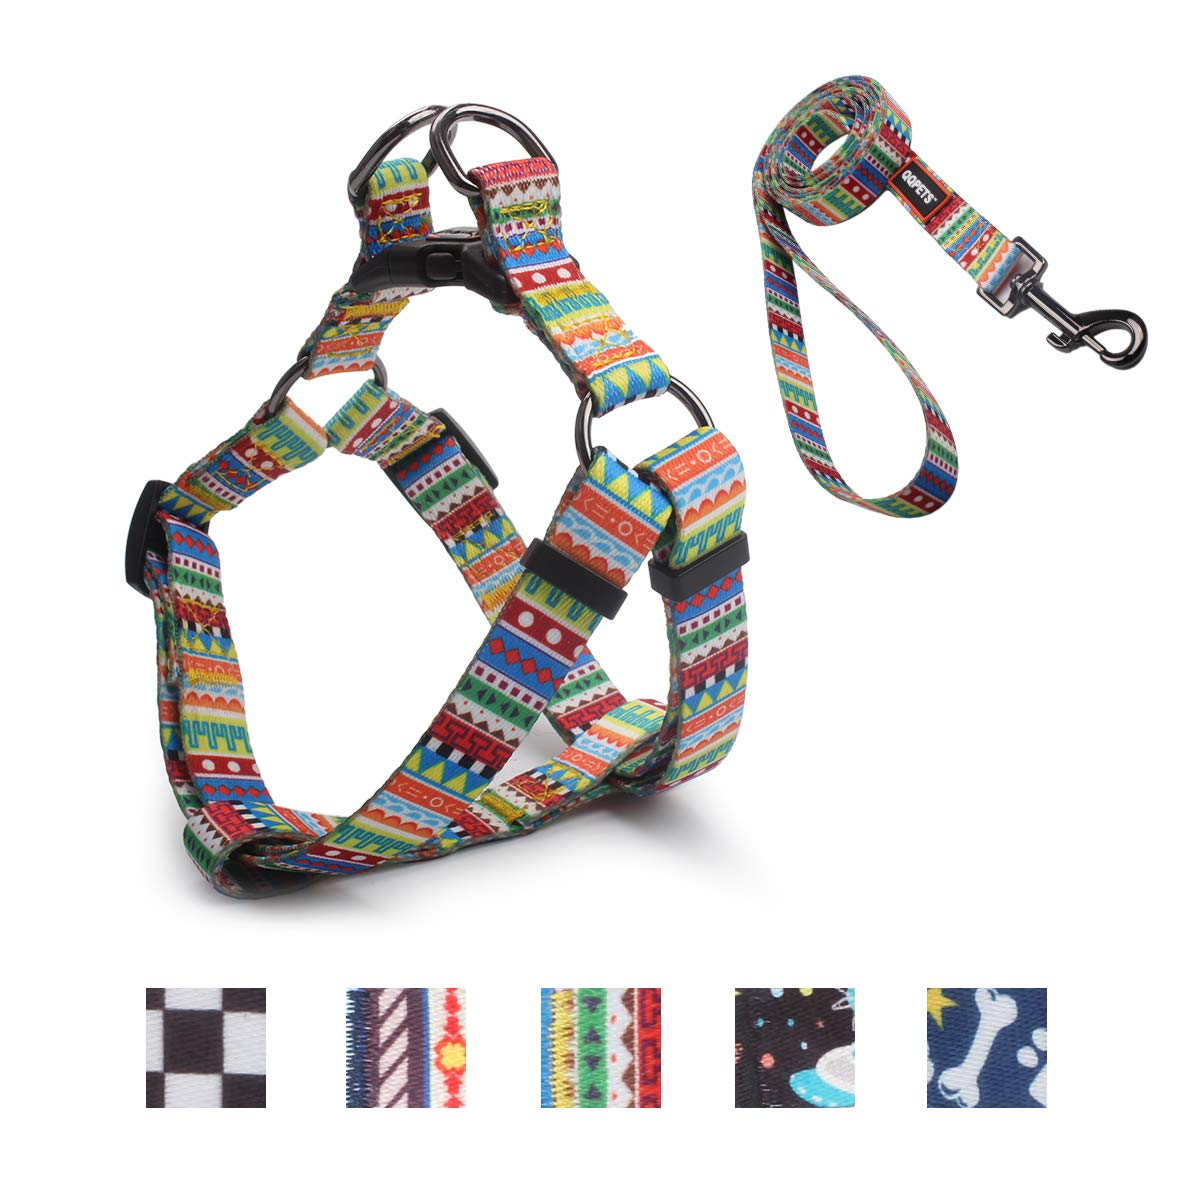 Geometric S(14\ Geometric S(14\ QQPETS Dog Harness Leash Set, Adjustable Vest Durable Heavy Duty Small Medium & Large Dogs Perfect for Walking Running Training (S(14 -20  Chest Girth), Geometric)